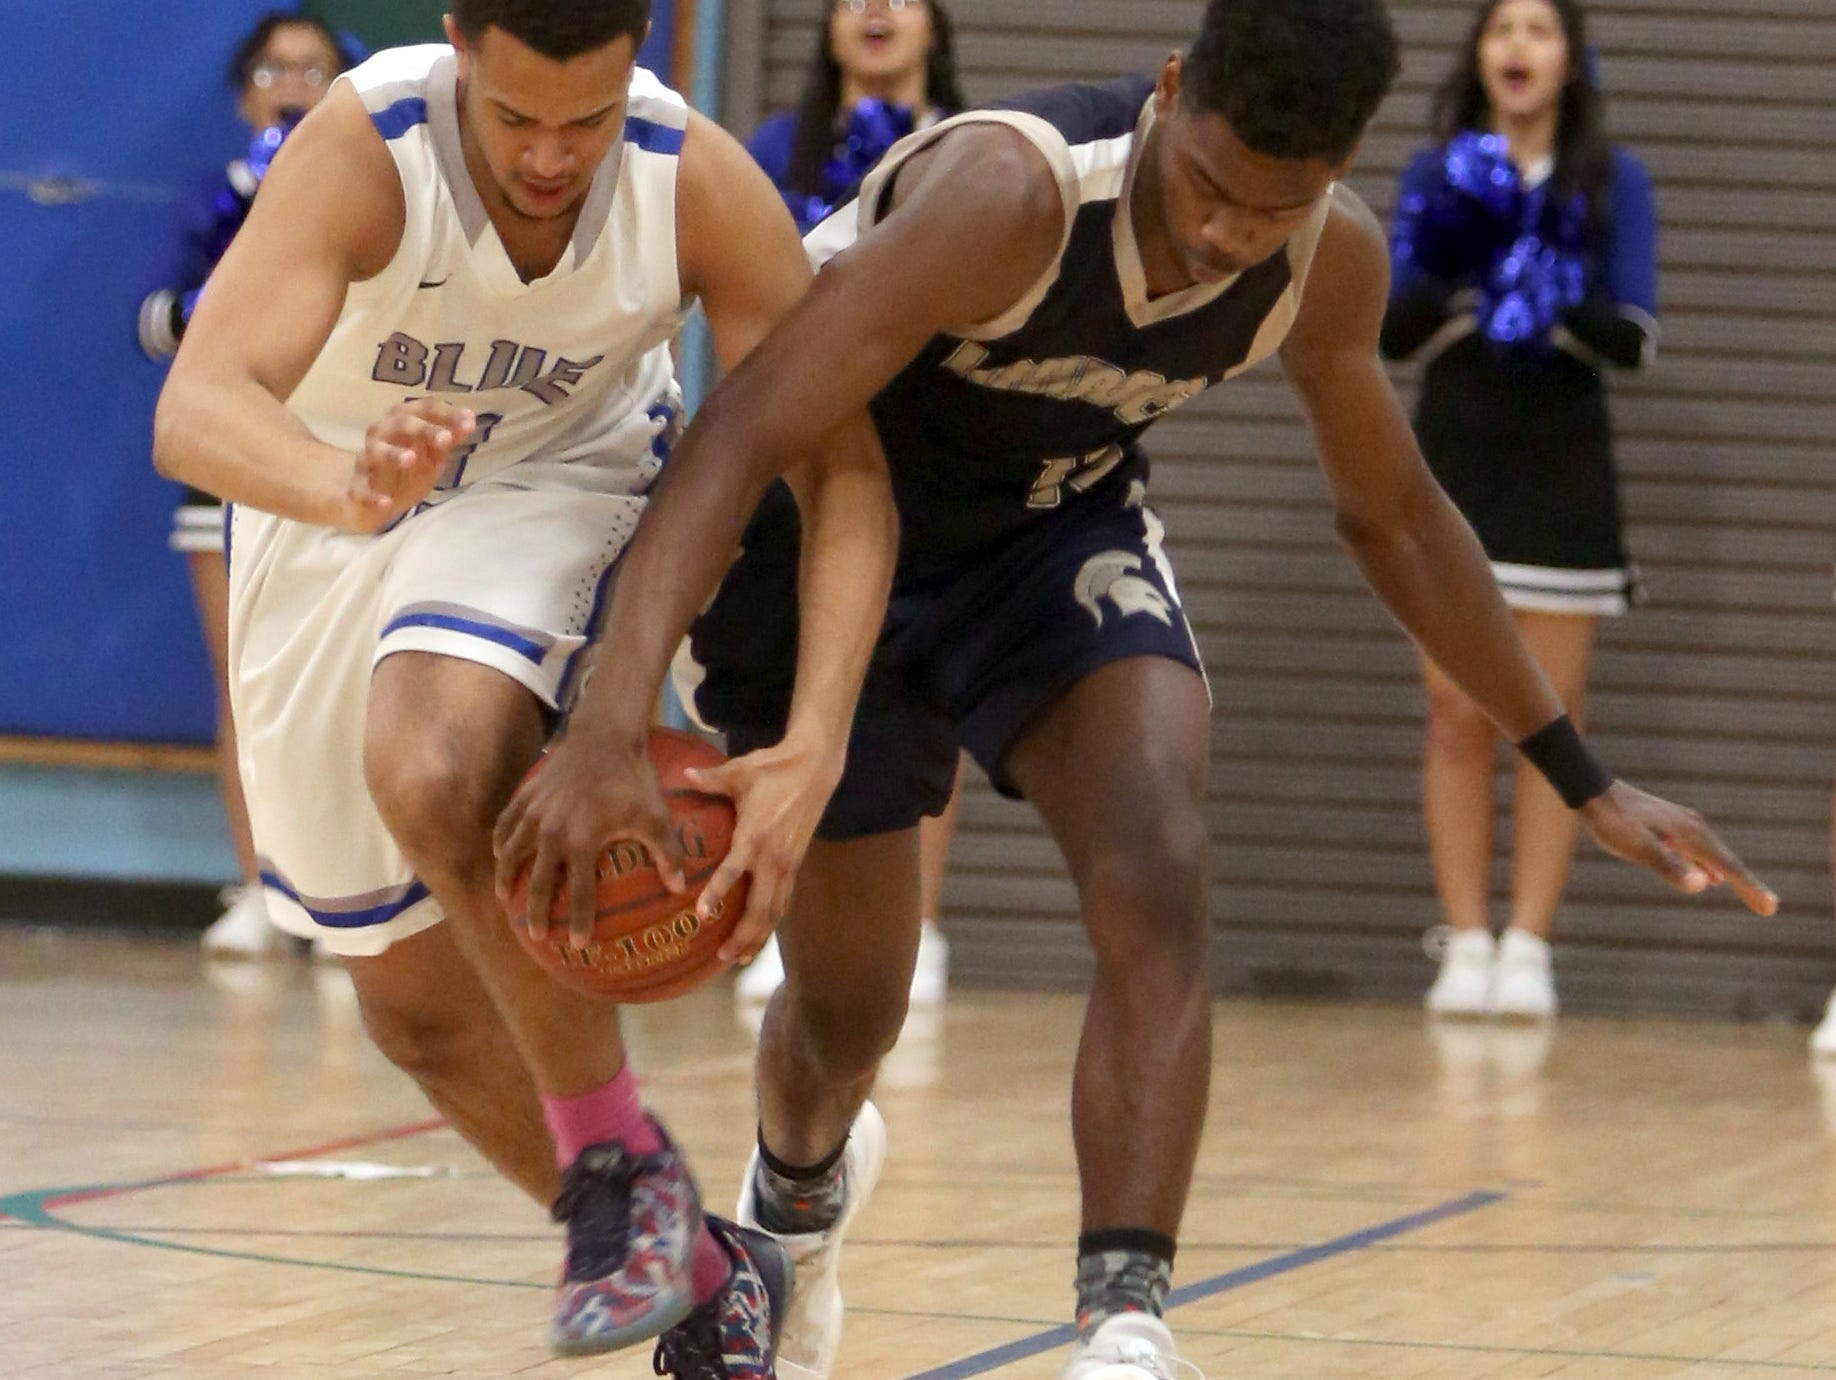 Jacob Vasquez-Mena of Saunders and Kevin Townes of Our Lady of Lourdes fight for the loose ball during a Class A quarterfinal basketball game at Saunders High School in Yonkers Feb. 23, 2017. Lourdes defeated Saunders 58-57.